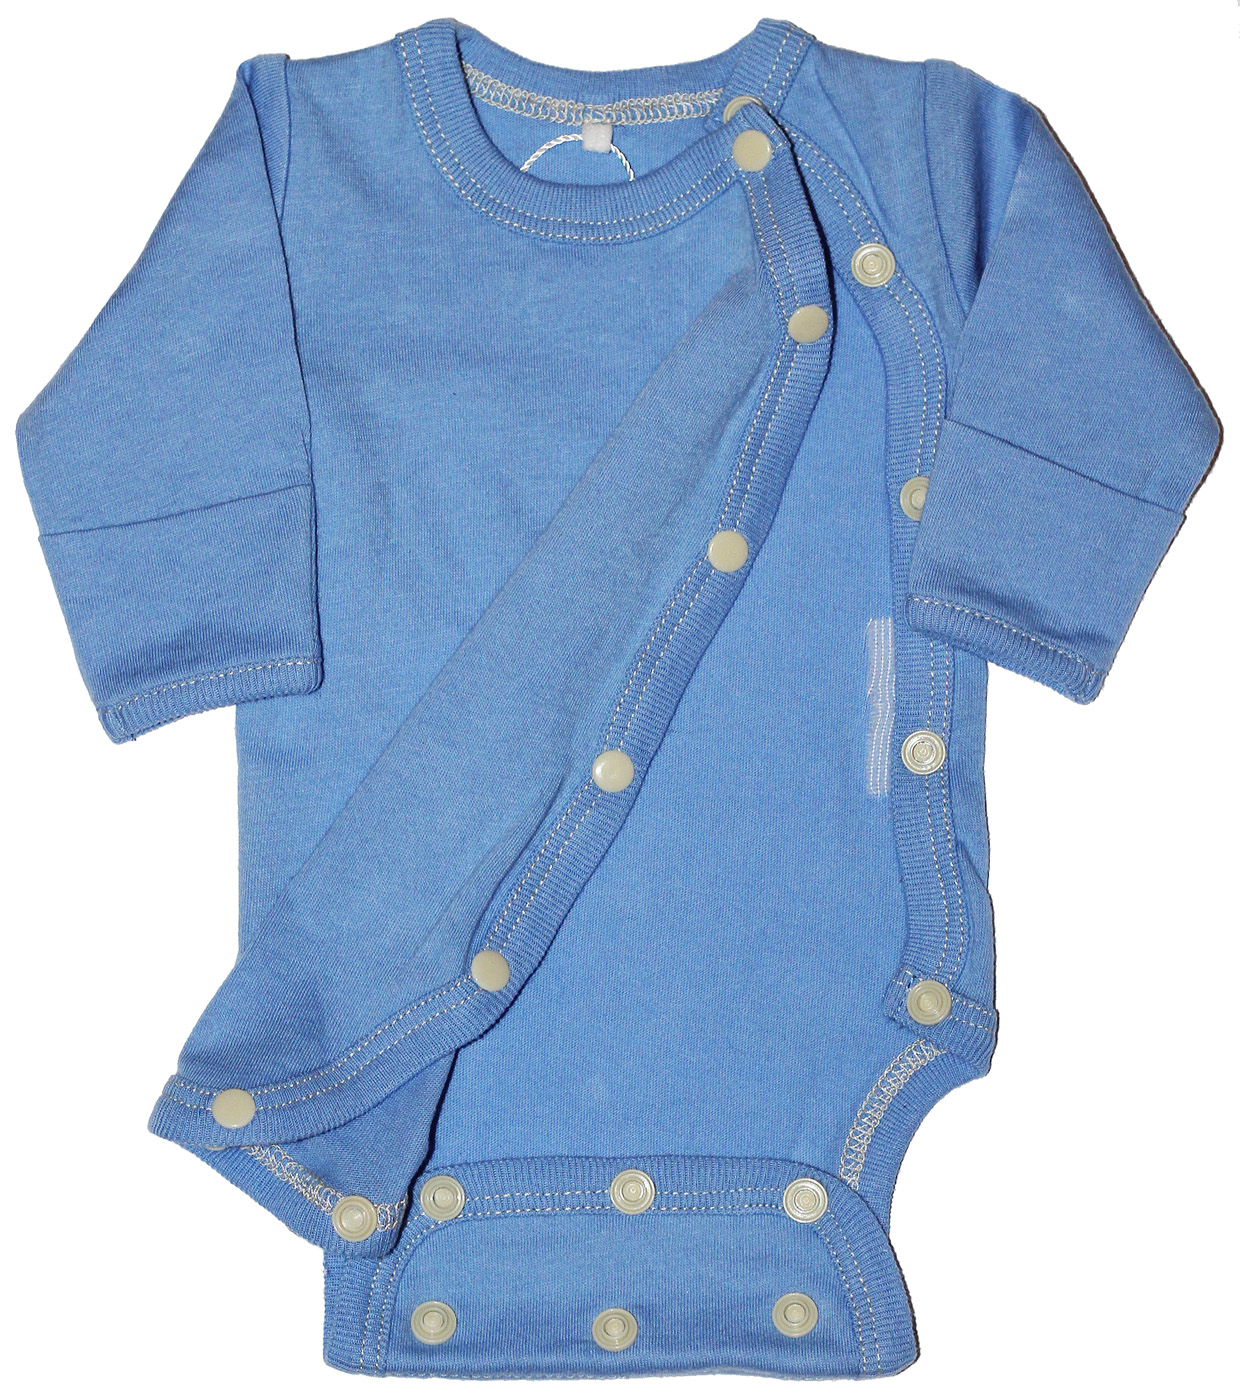 bf0696ba7 Preemie leggingsThe leggings have rib waist and folded socks, to enable  easier access for tubes and wires Tamiko preemie dress ...